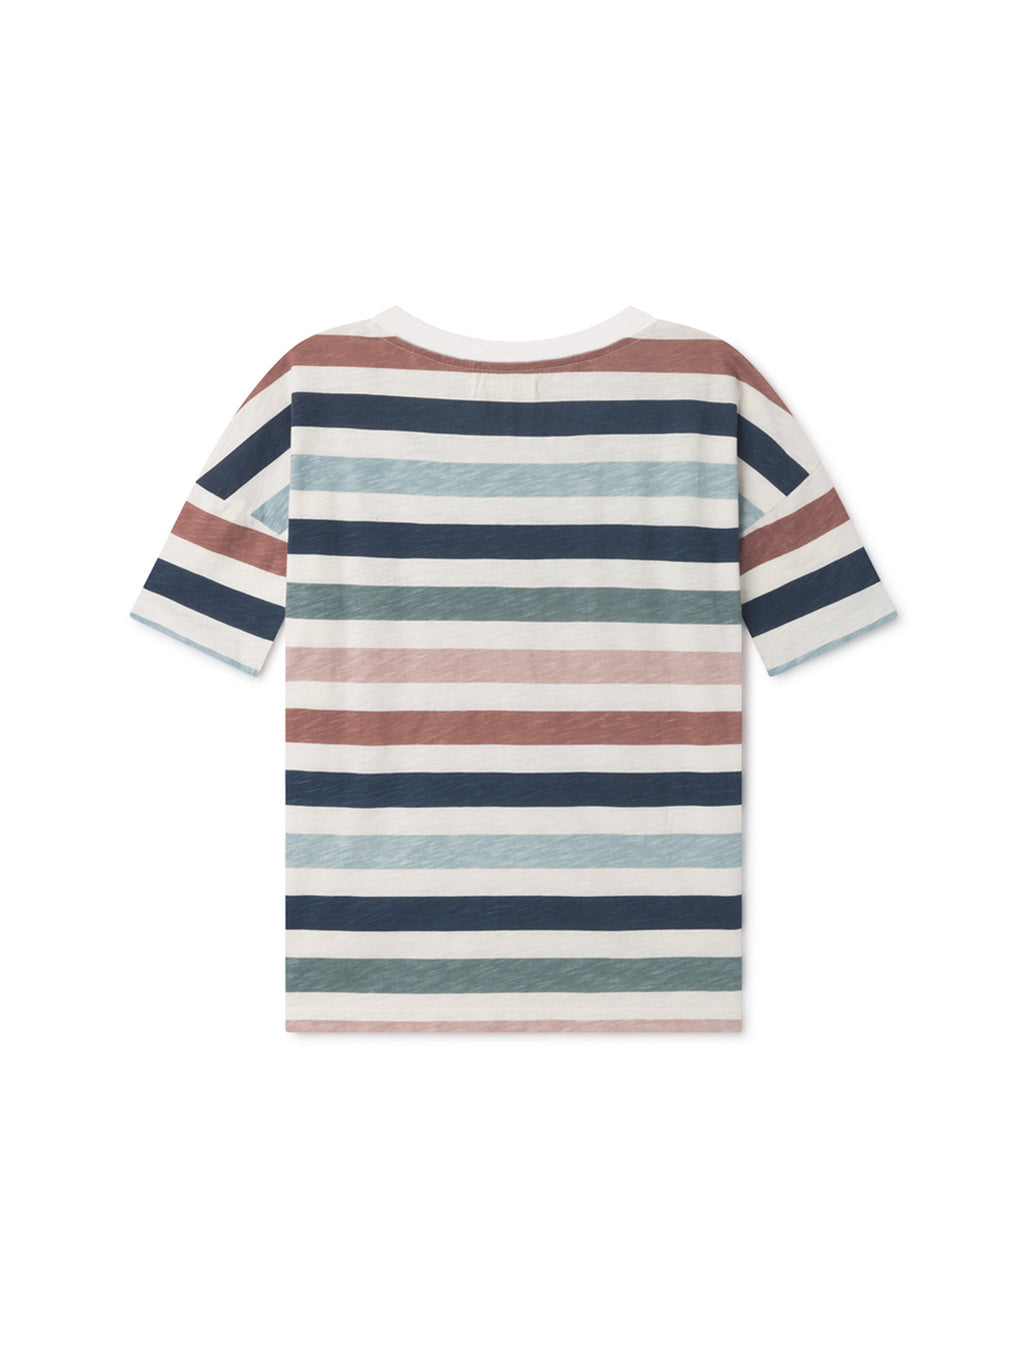 TWOTHIRDS Womens Tee: Vido - Striped back